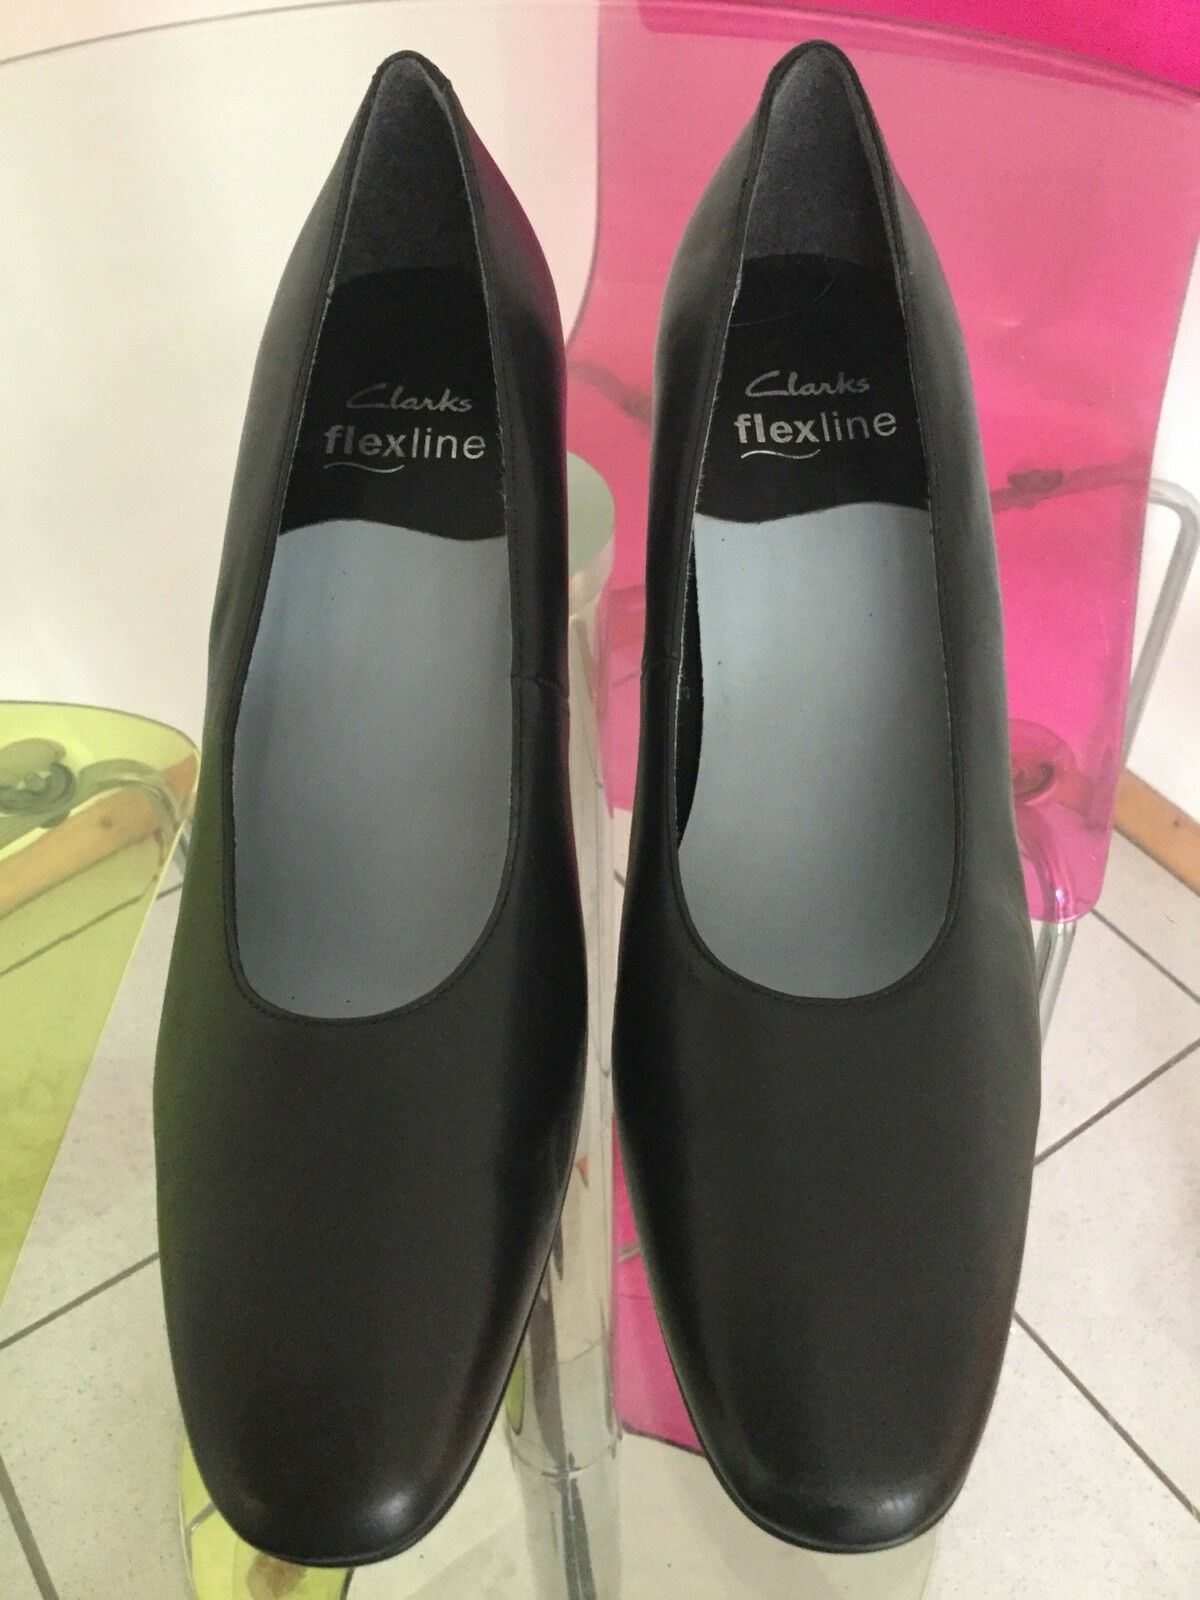 Clarks Shoes Flexline Black Leather Court Shoes Clarks Ideal Cabin Crew Size 8 New de88ad